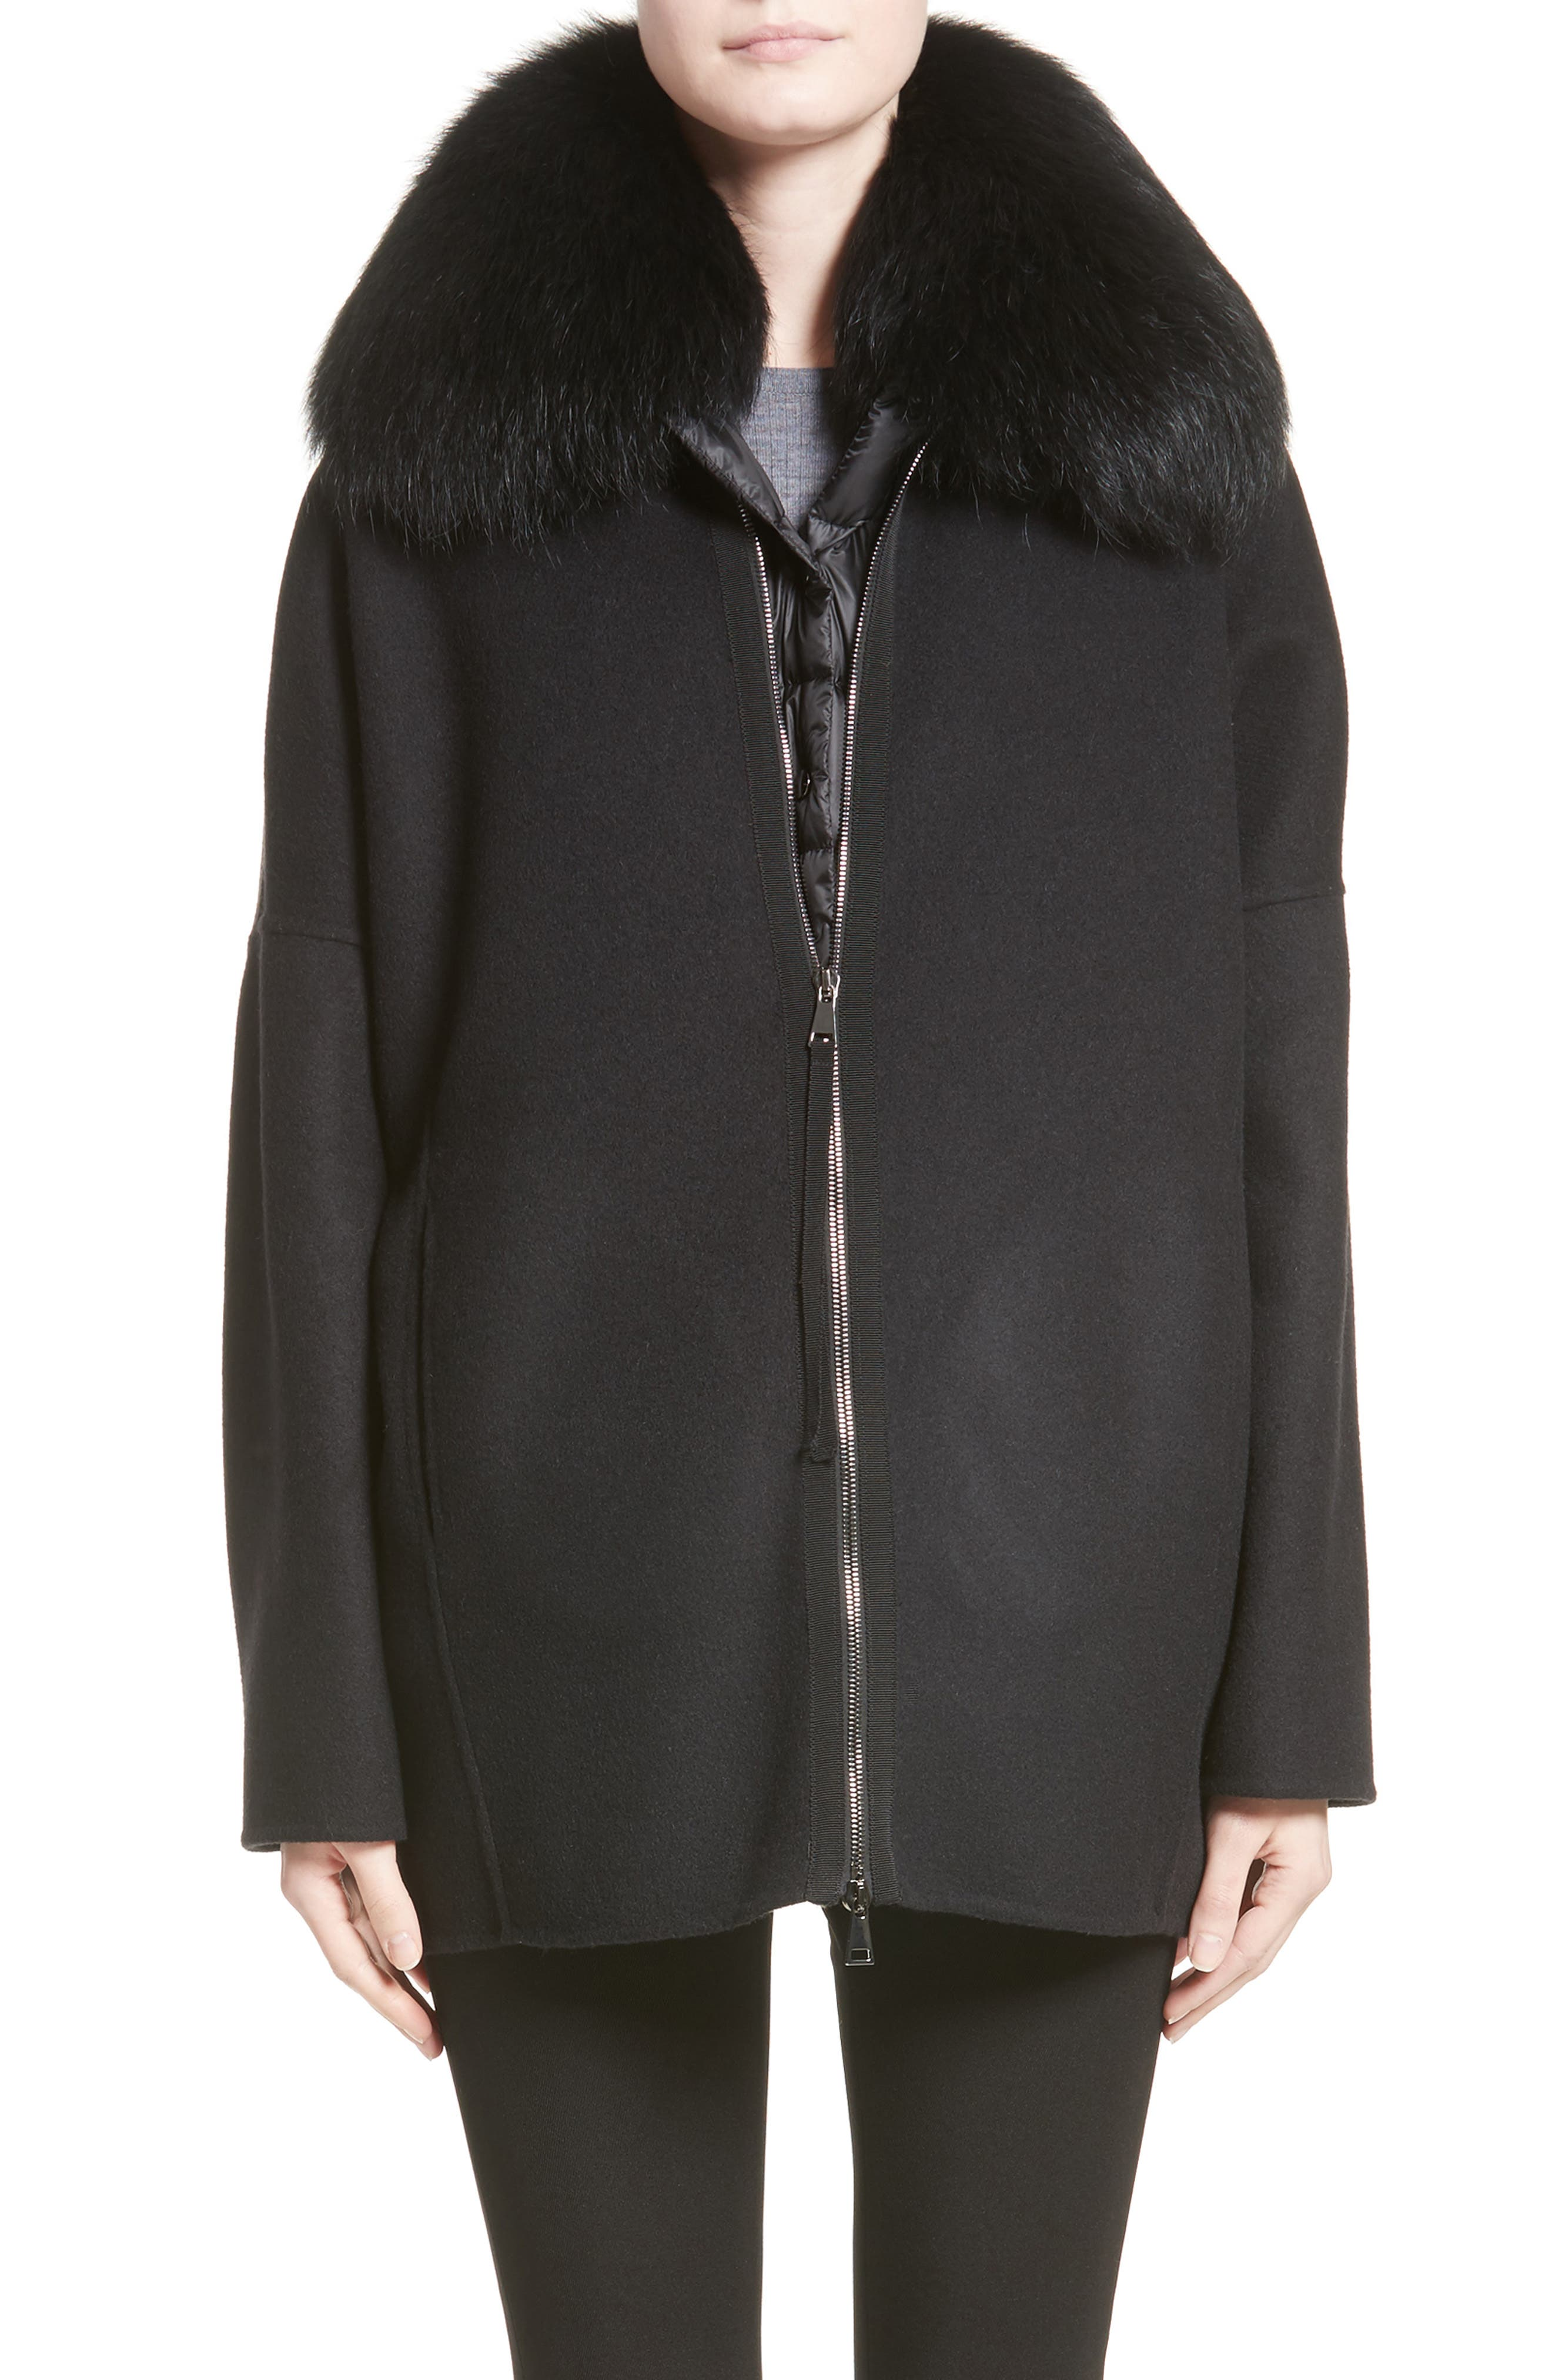 Main Image - Moncler Buxus Wool & Cashmere Coat with Removable Genuine Fox Fur Trim Vest